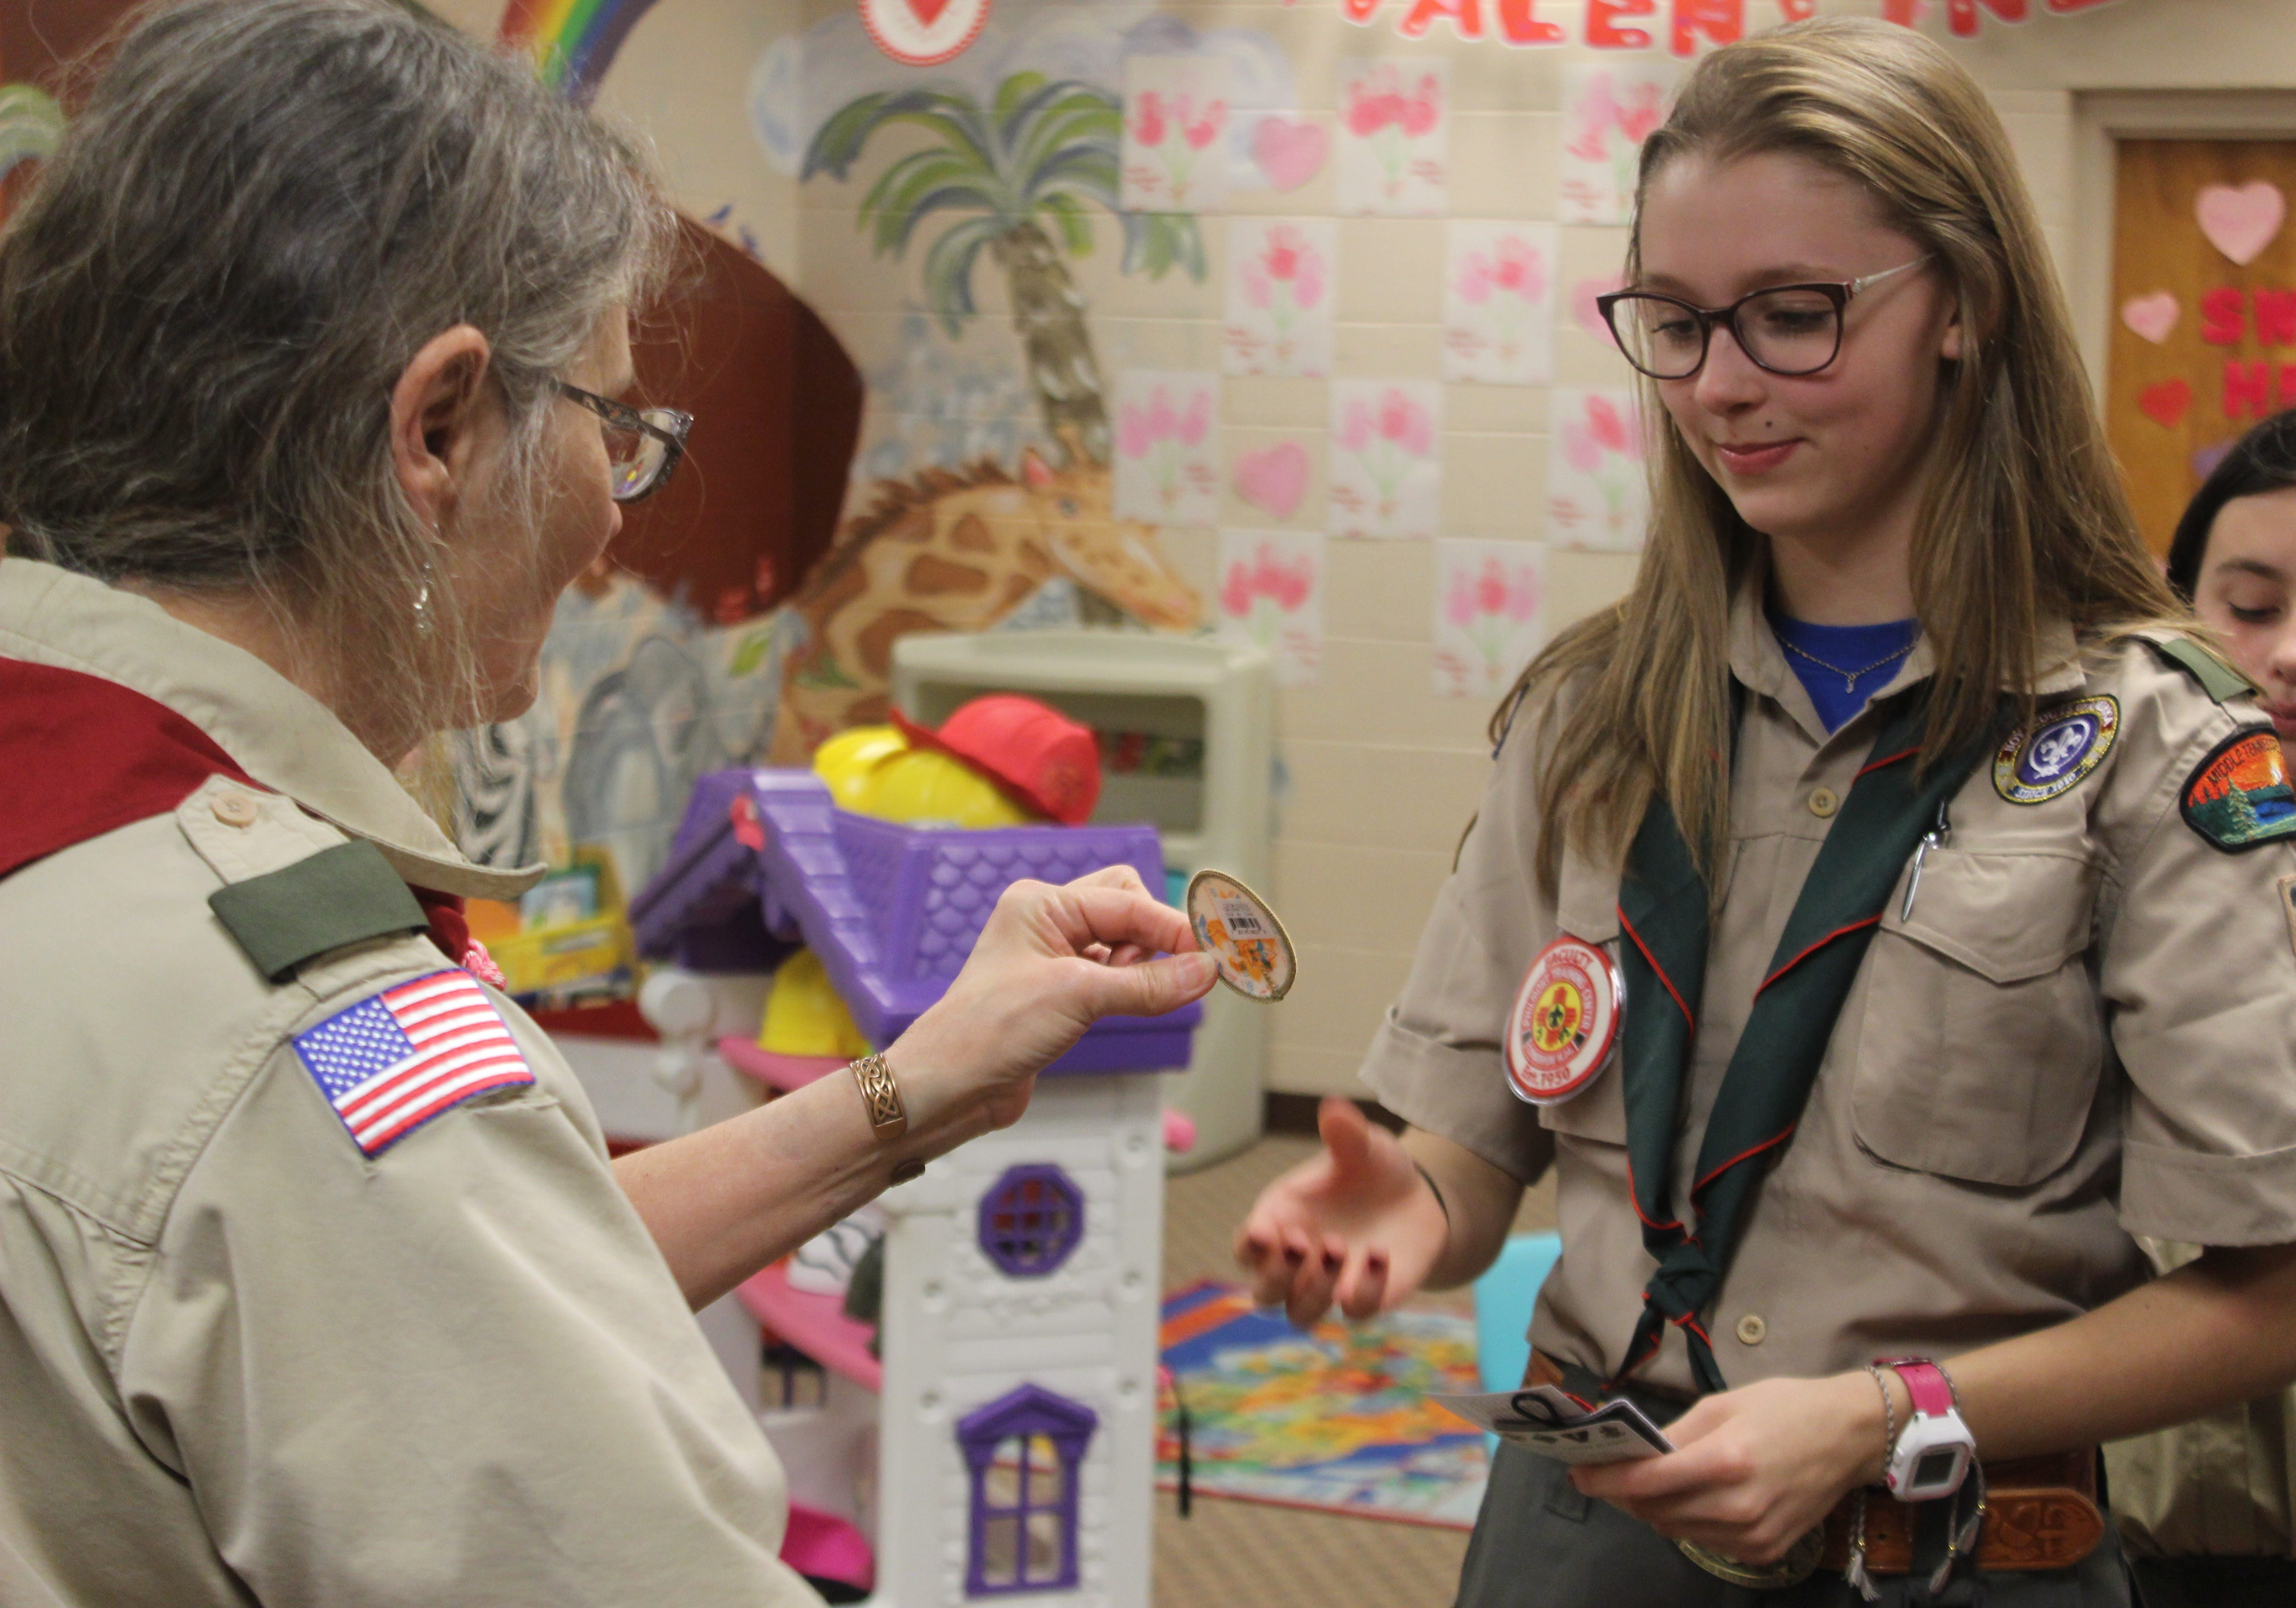 Gabby Kowalski receives a merit badge signifying completion of her first rank as an official member of Scout BSA Troop 21 on February 12, 2019.